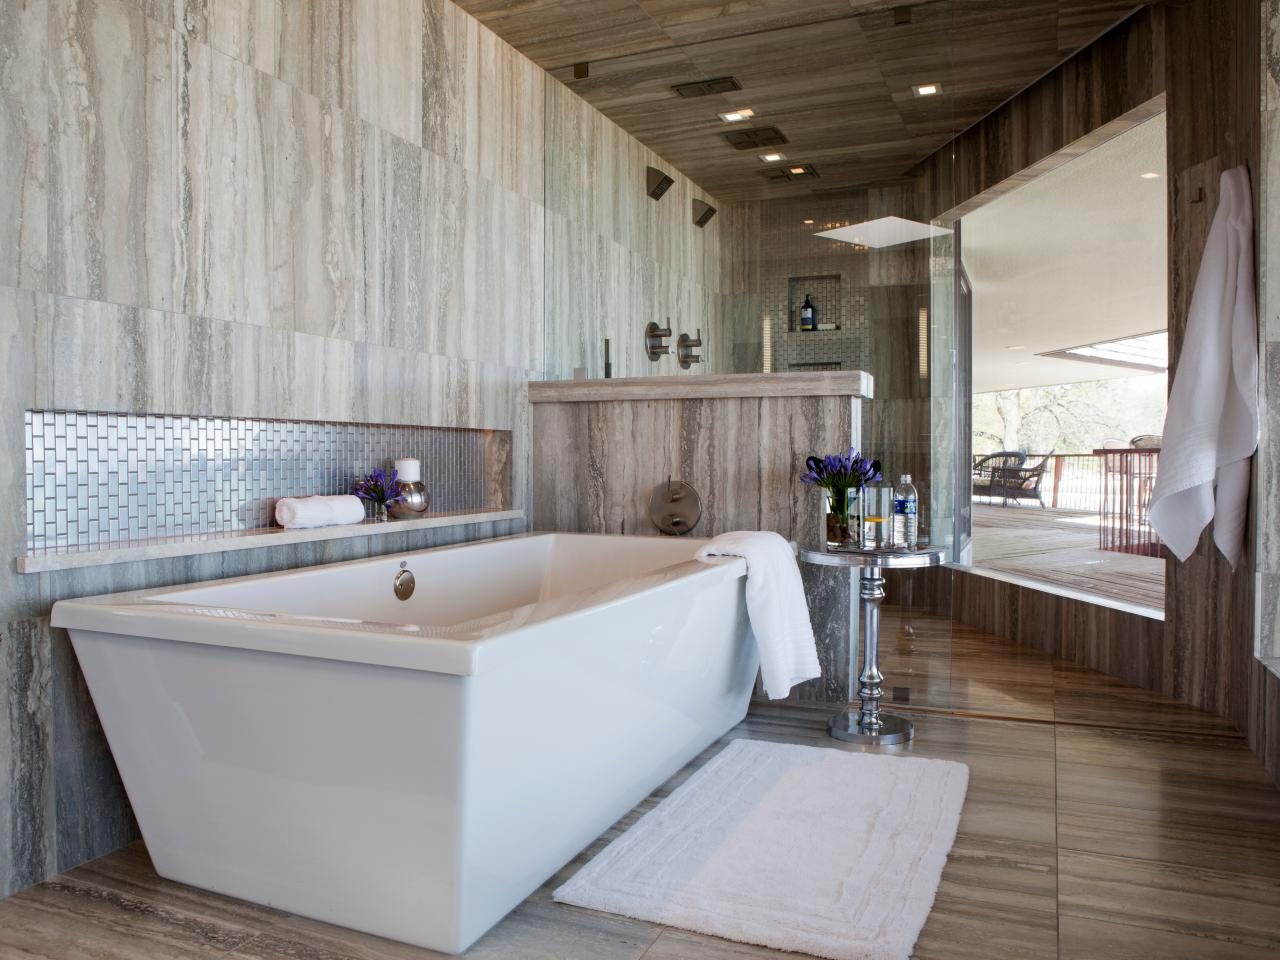 Trendy Bathroom Ideas contemporary bathrooms: pictures, ideas & tips from hgtv | hgtv